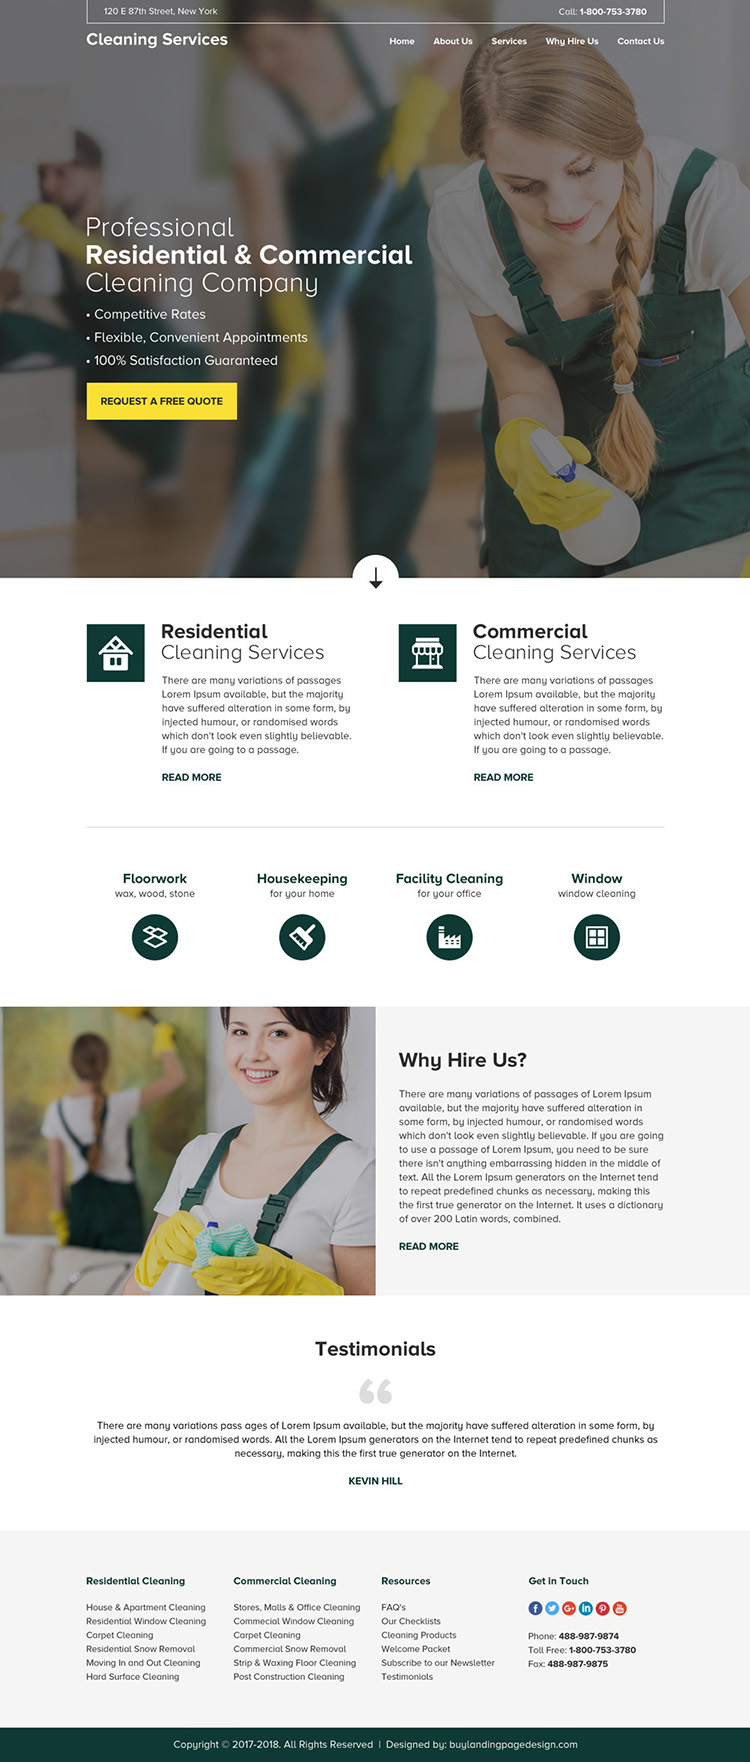 residential and commercial cleaning service company responsive website design